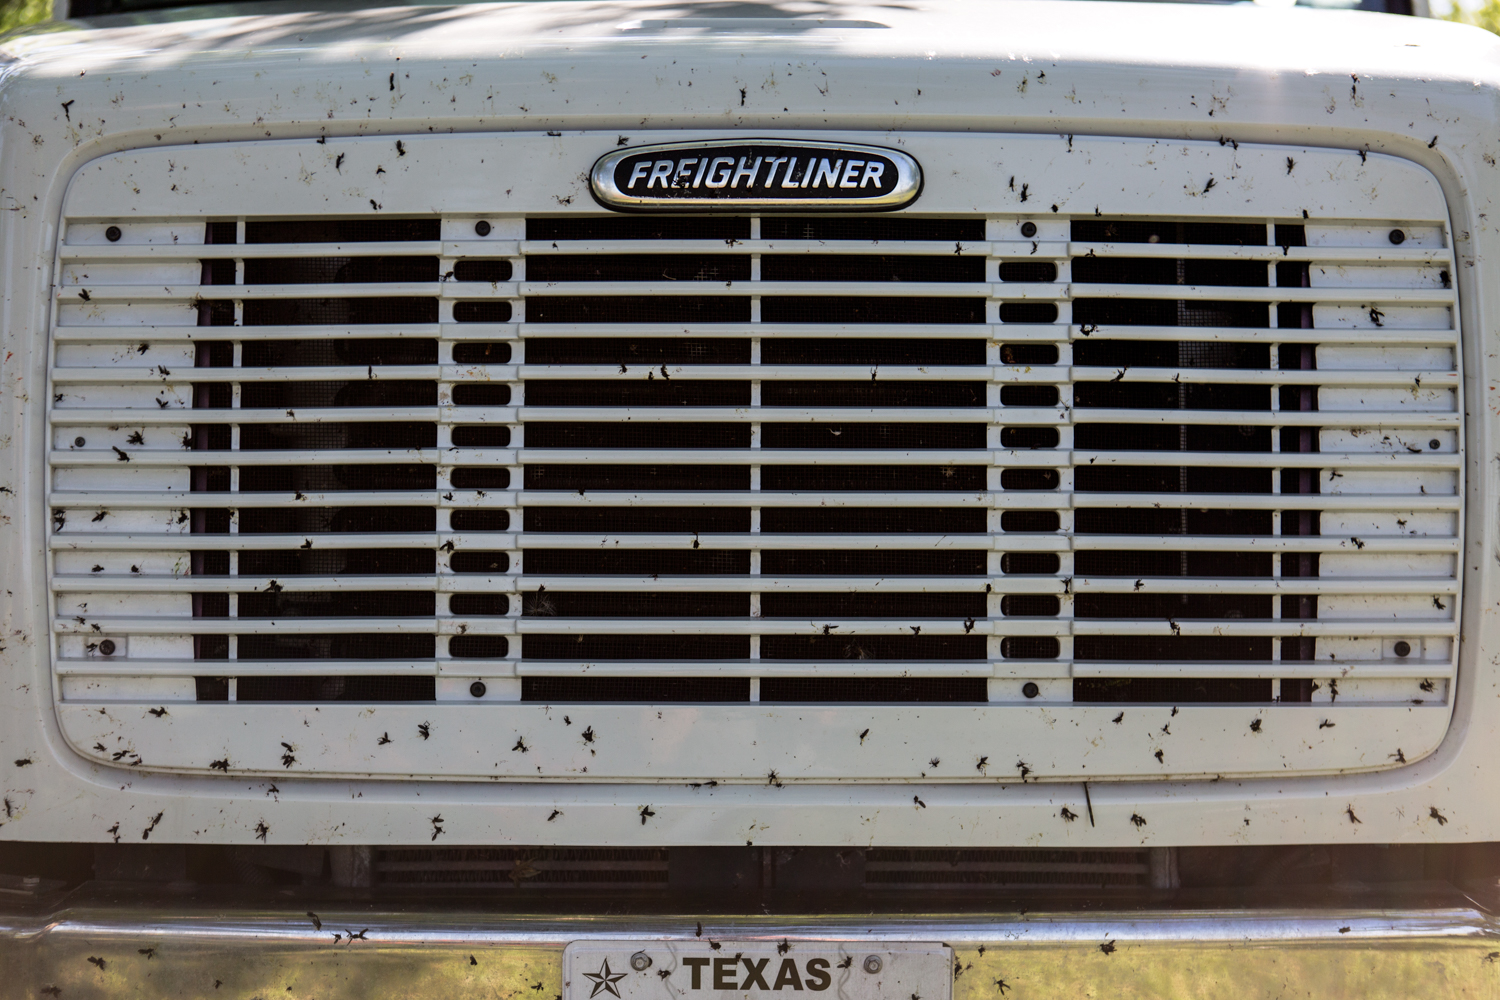 The grill of Hudspeth's heavy duty truck covered in love bugs during the spring polo season. She is constantly on the road both during and in between polo seasons.